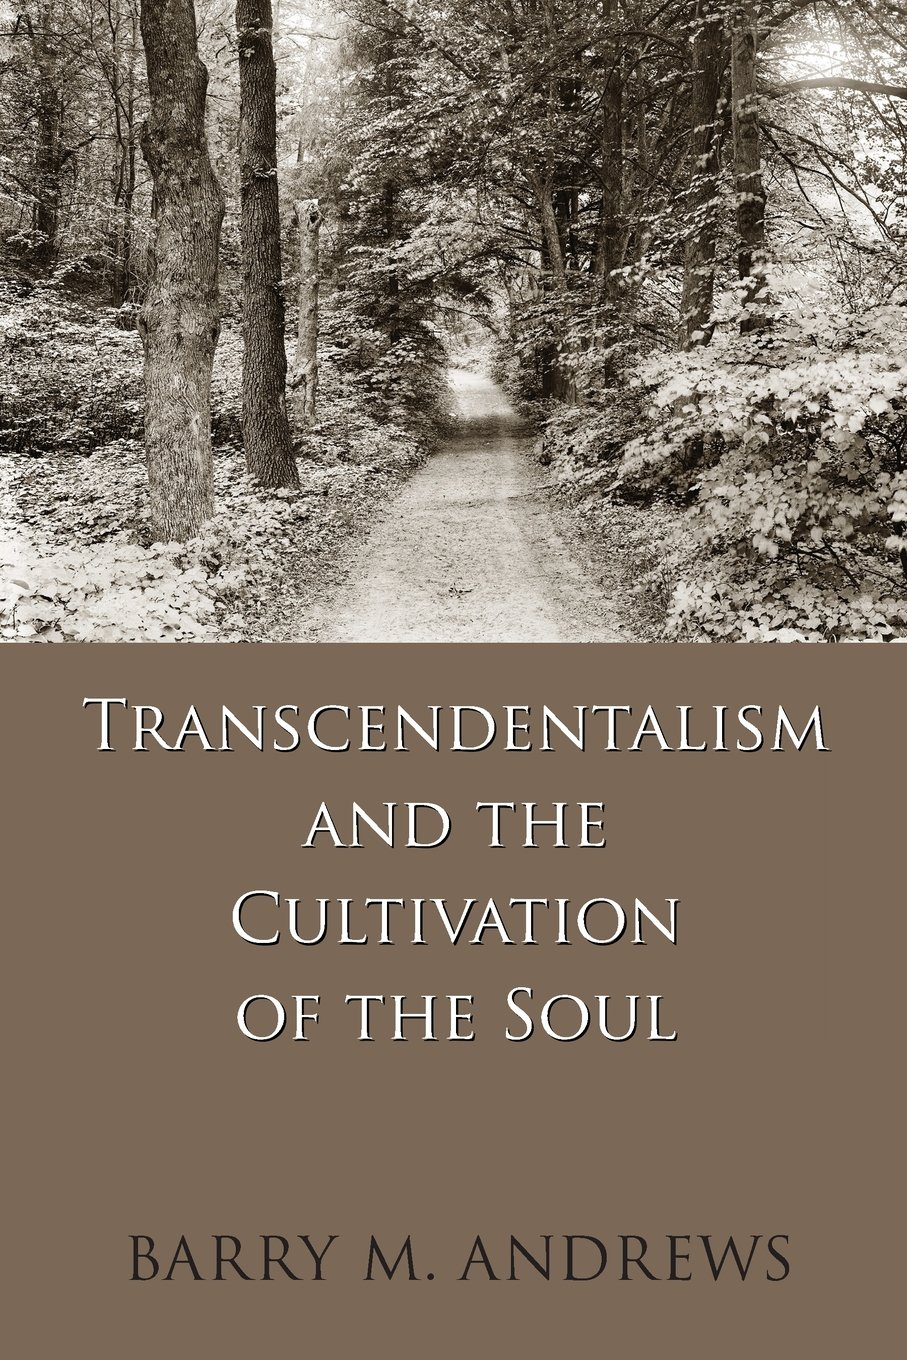 Image result for Transcendentalism and the Cultivation of the Soul?